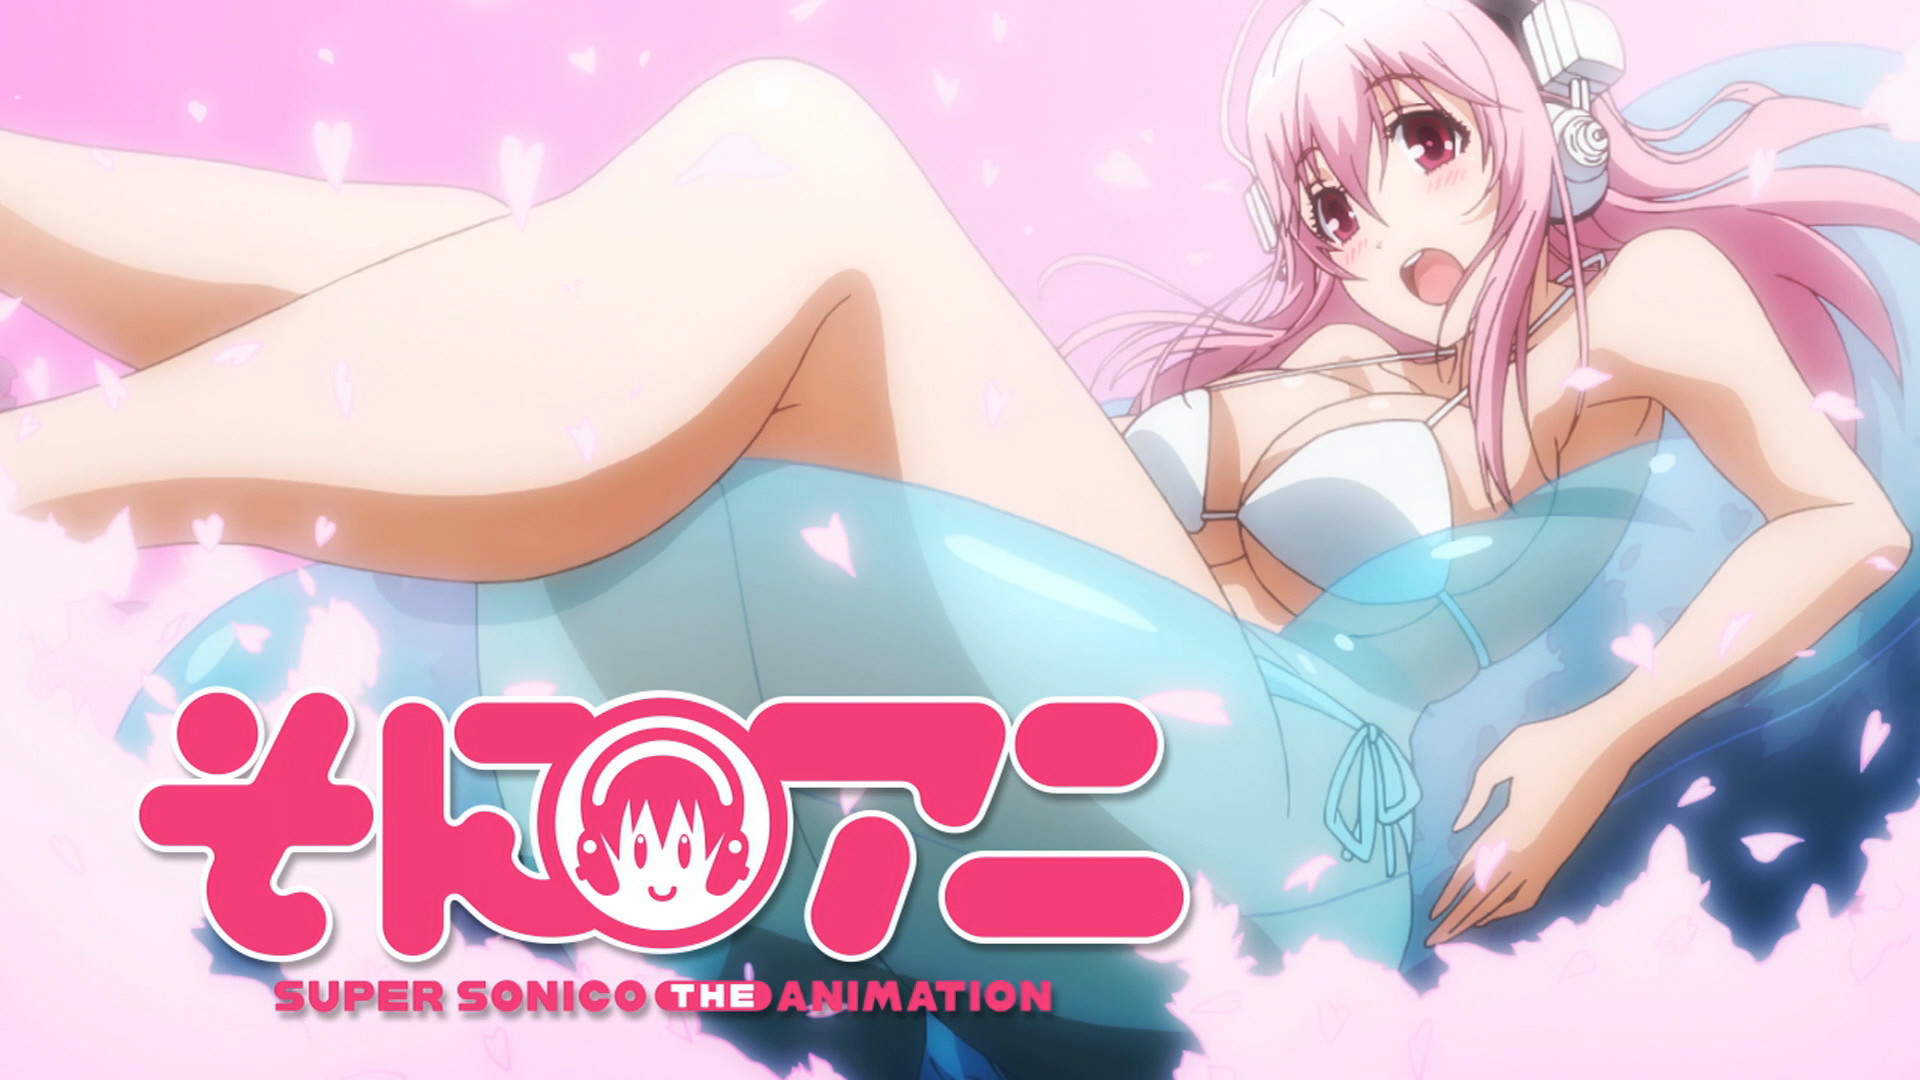 Soni-Ani SUPER SONICO THE ANIMATION Episode 1 014